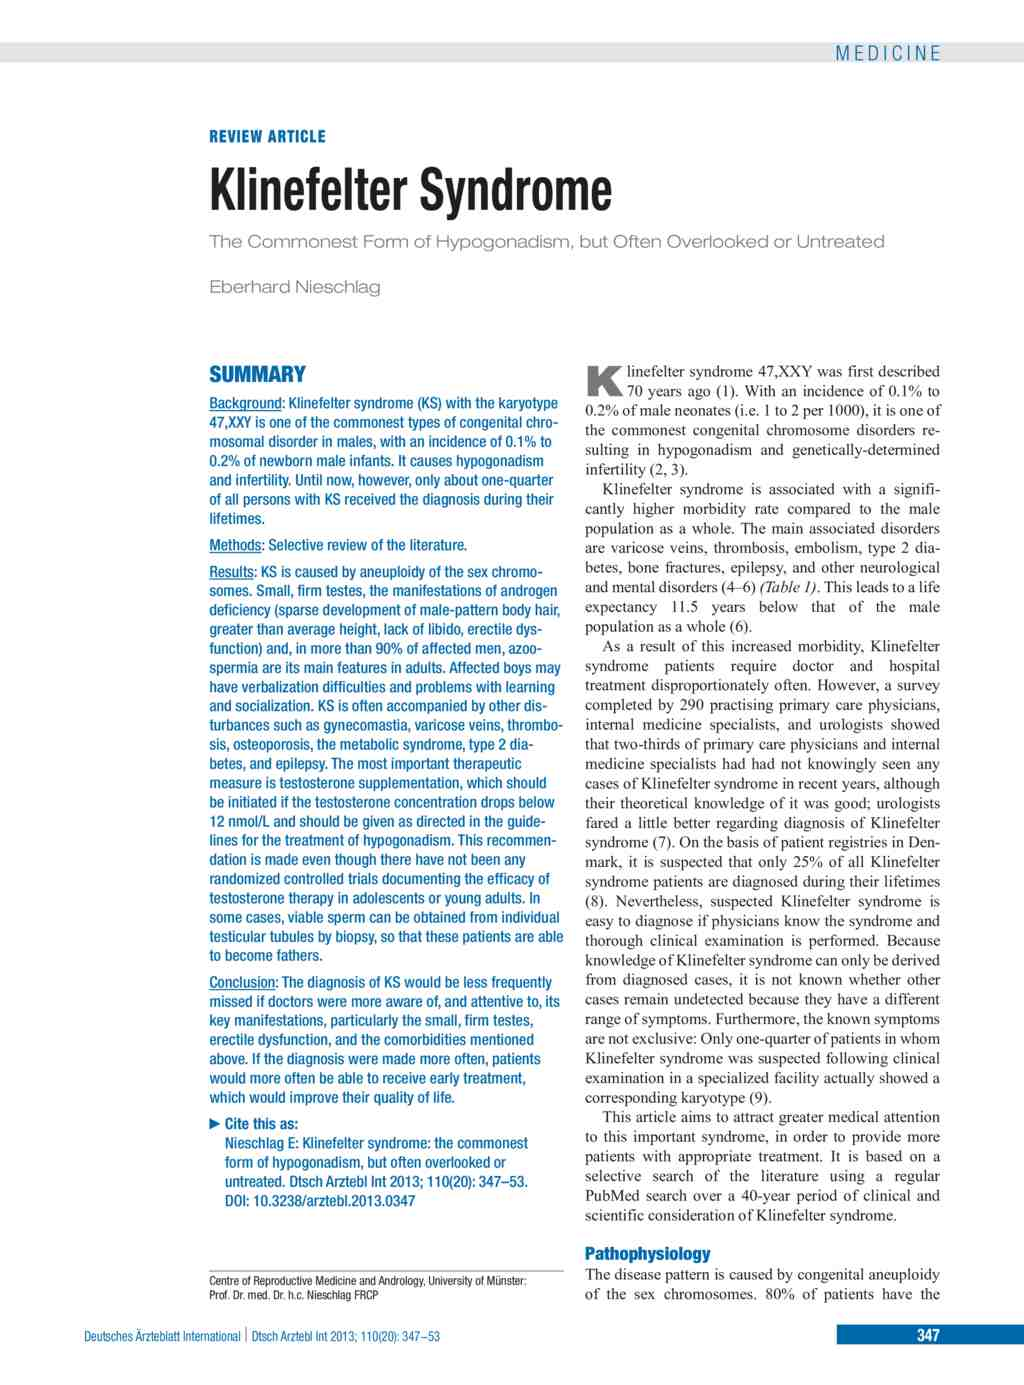 an analysis of klinefelter syndrome Abramsky, l, & chapple, j (1997) 47, xxy (klinefelter syndrome) and 47,xyy: estimated rates of and indication for postnatal diagnosis with implications for.